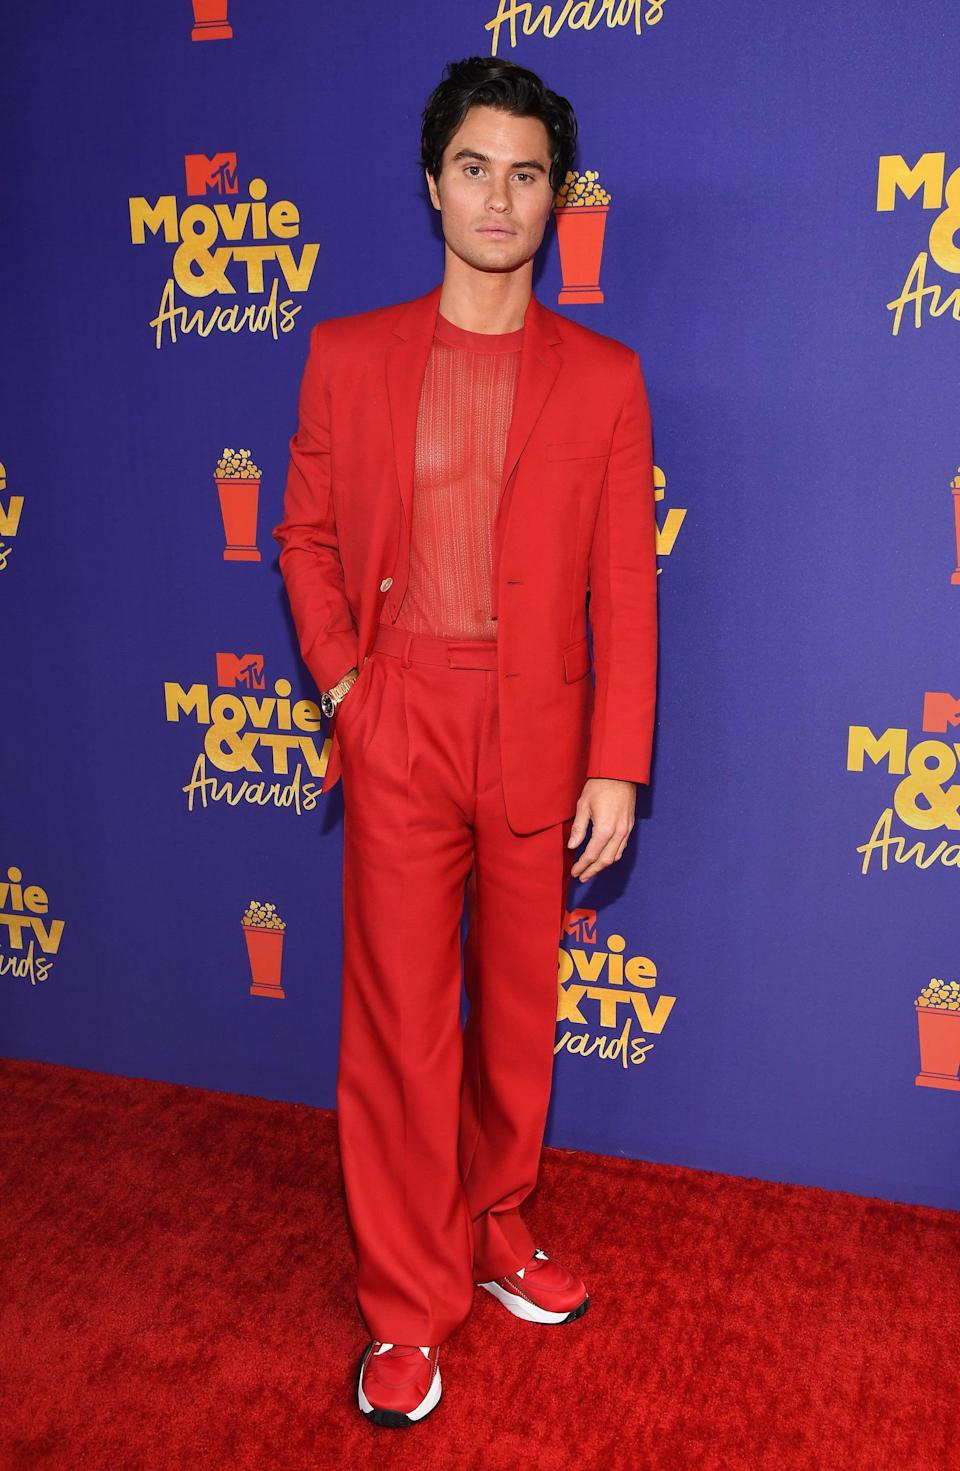 """<p>Wearing a <a href=""""https://www.popsugar.com/fashion/chase-stokes-outfit-mtv-movie-tv-awards-2021-48326469"""" class=""""link rapid-noclick-resp"""" rel=""""nofollow noopener"""" target=""""_blank"""" data-ylk=""""slk:Fendi look"""">Fendi look</a> with an Omega timepiece.</p>"""